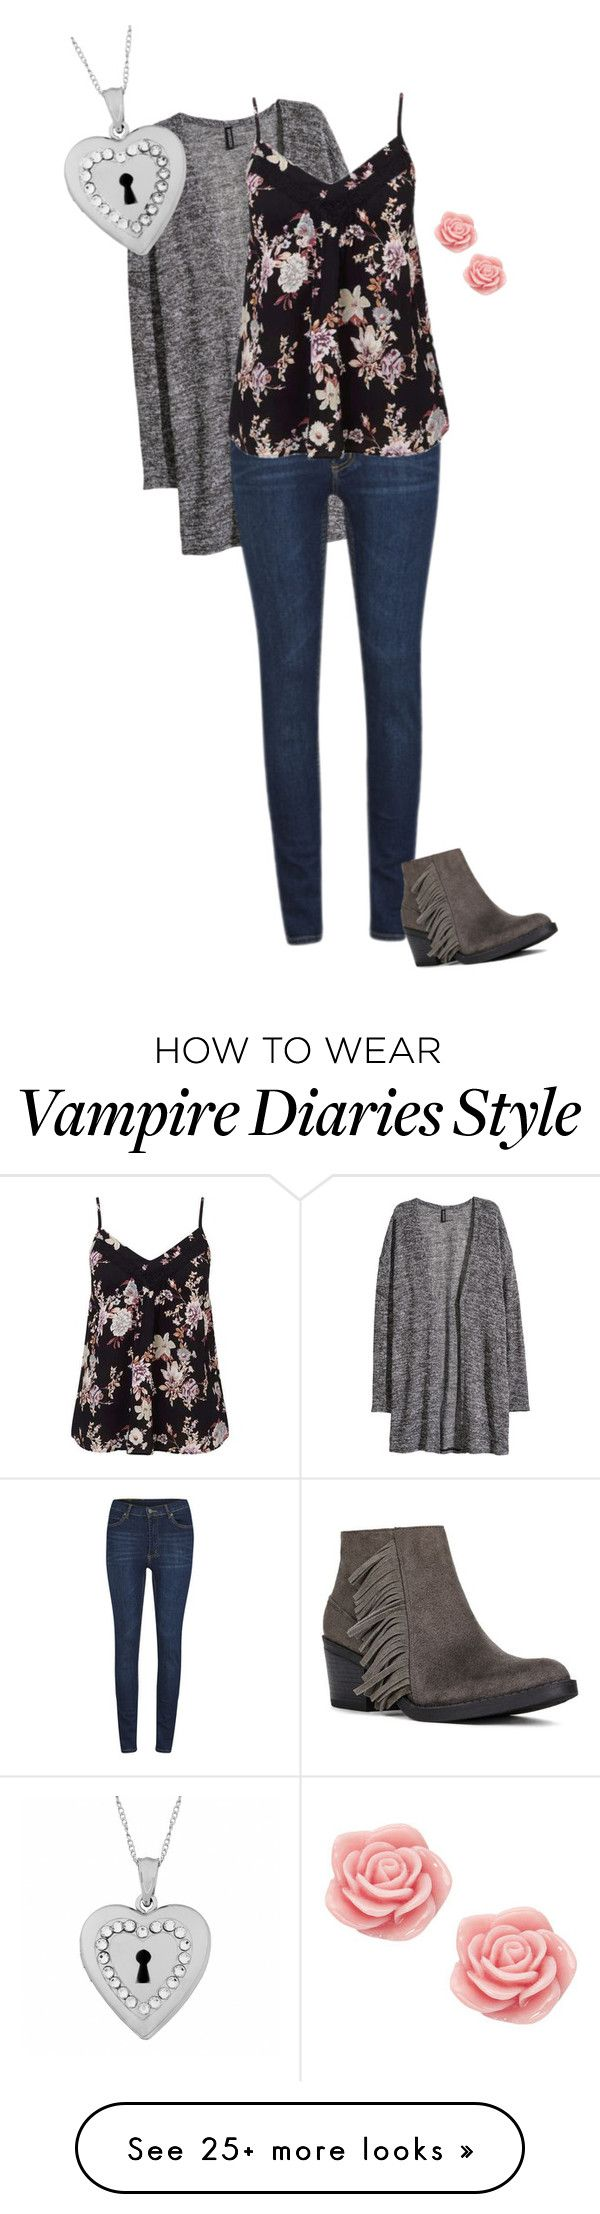 """""""Caroline Forbes 1.0 {The Vampire Diaries}"""" by sarah-natalie on Polyvore featuring H&M, Cheap Monday, Miss Selfridge, Fremada, JustFab and Monsoon"""